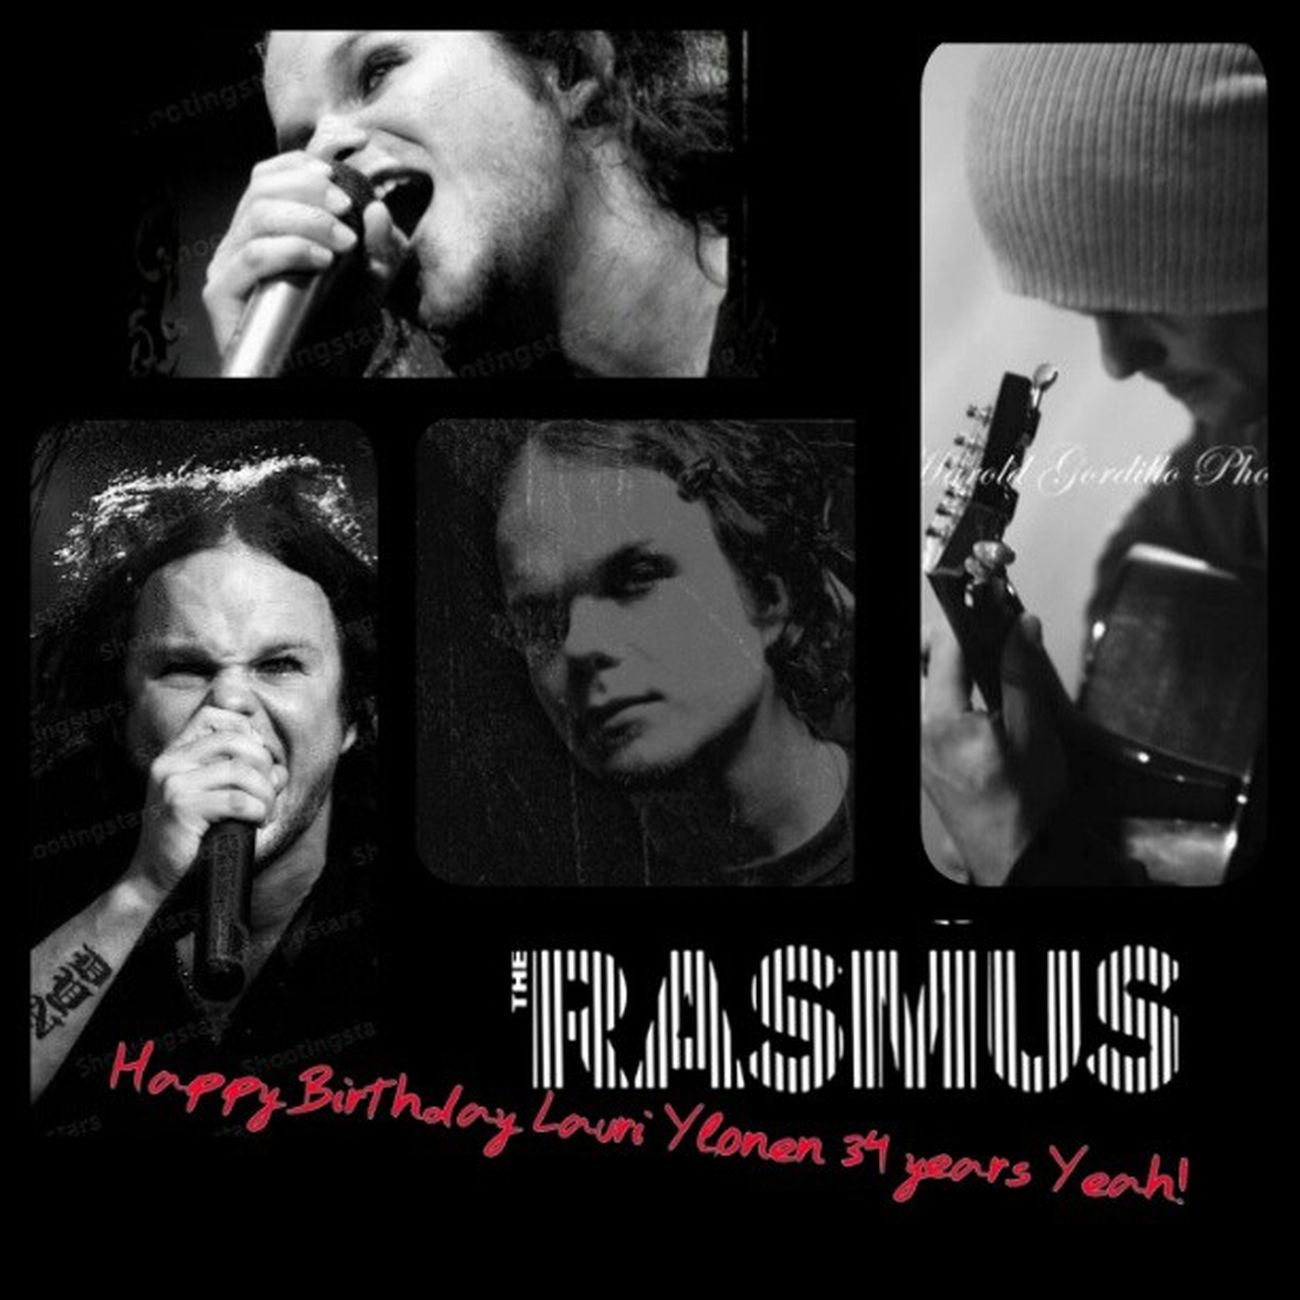 Happy Birthday Lauri Ylonen 34 years Yeah! LauriYlönen Happyday 34Years Fucking rockStar Iloves Beautiful Men TheRasmus FuckYeah BlackWhite ♥♥♥♥♬♪★ :D